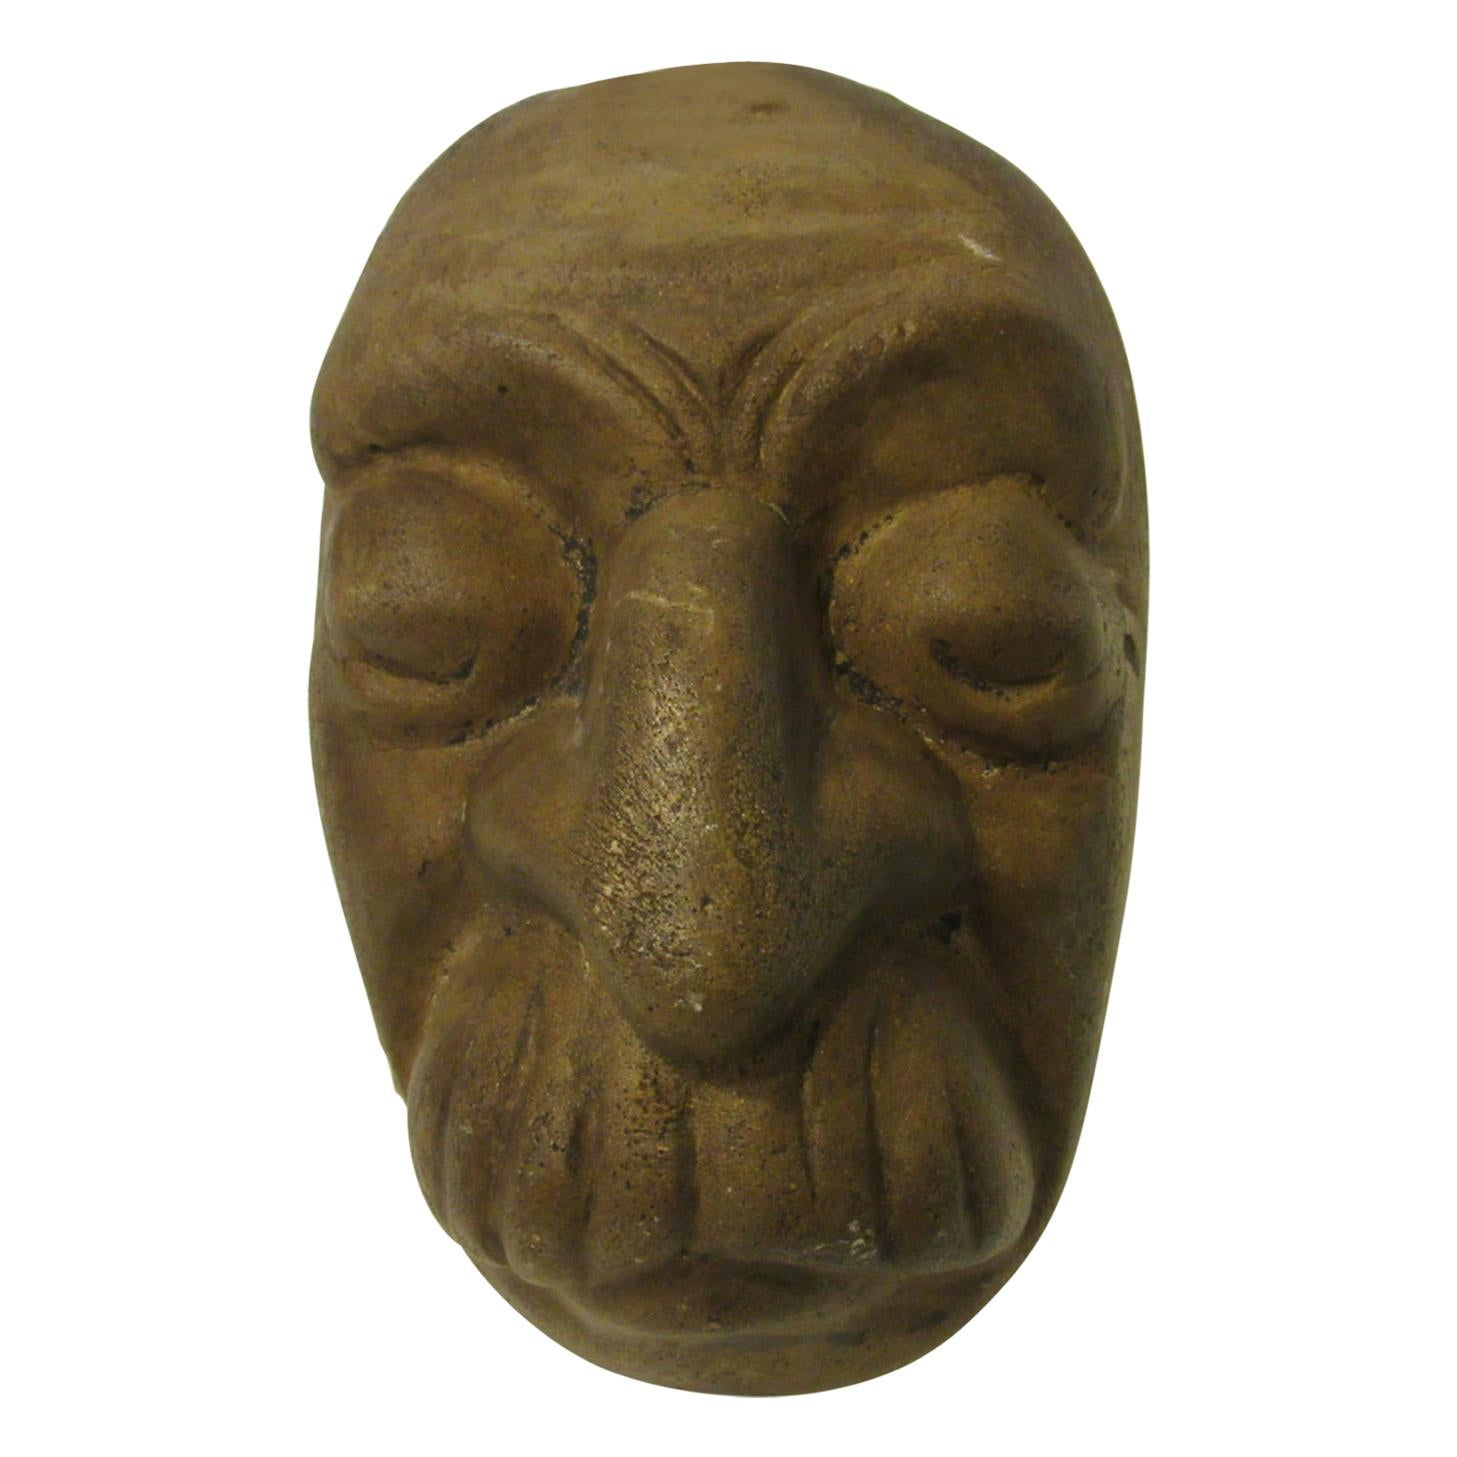 1920s Halloween Mask Mold by the American Mask Company